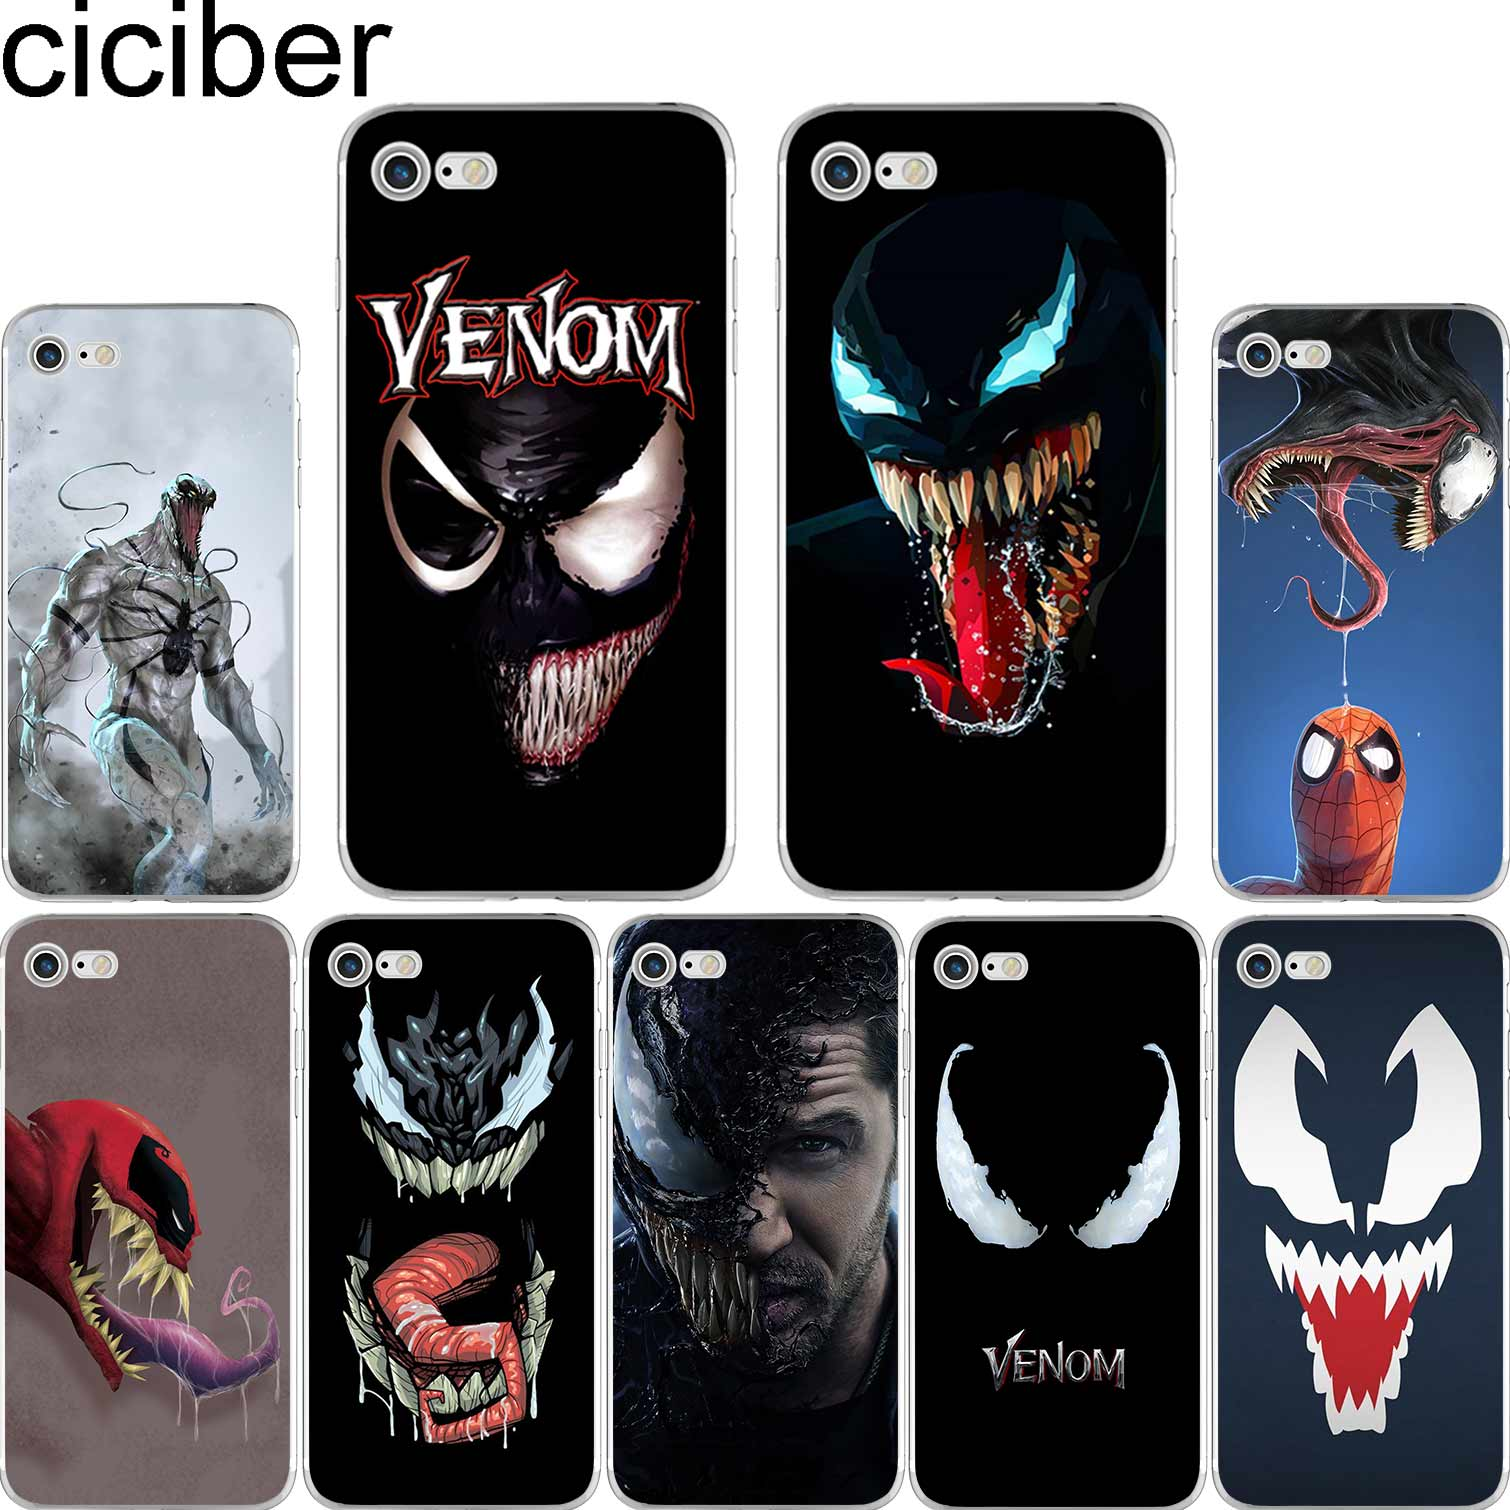 separation shoes c2171 aedd5 ciciber Villain Marvel Venom Soft Silicon Phone Cases Cover for IPhone 6 6S  7 8 Plus 5S SE X XS XR Mas Capinha Fundas Capa